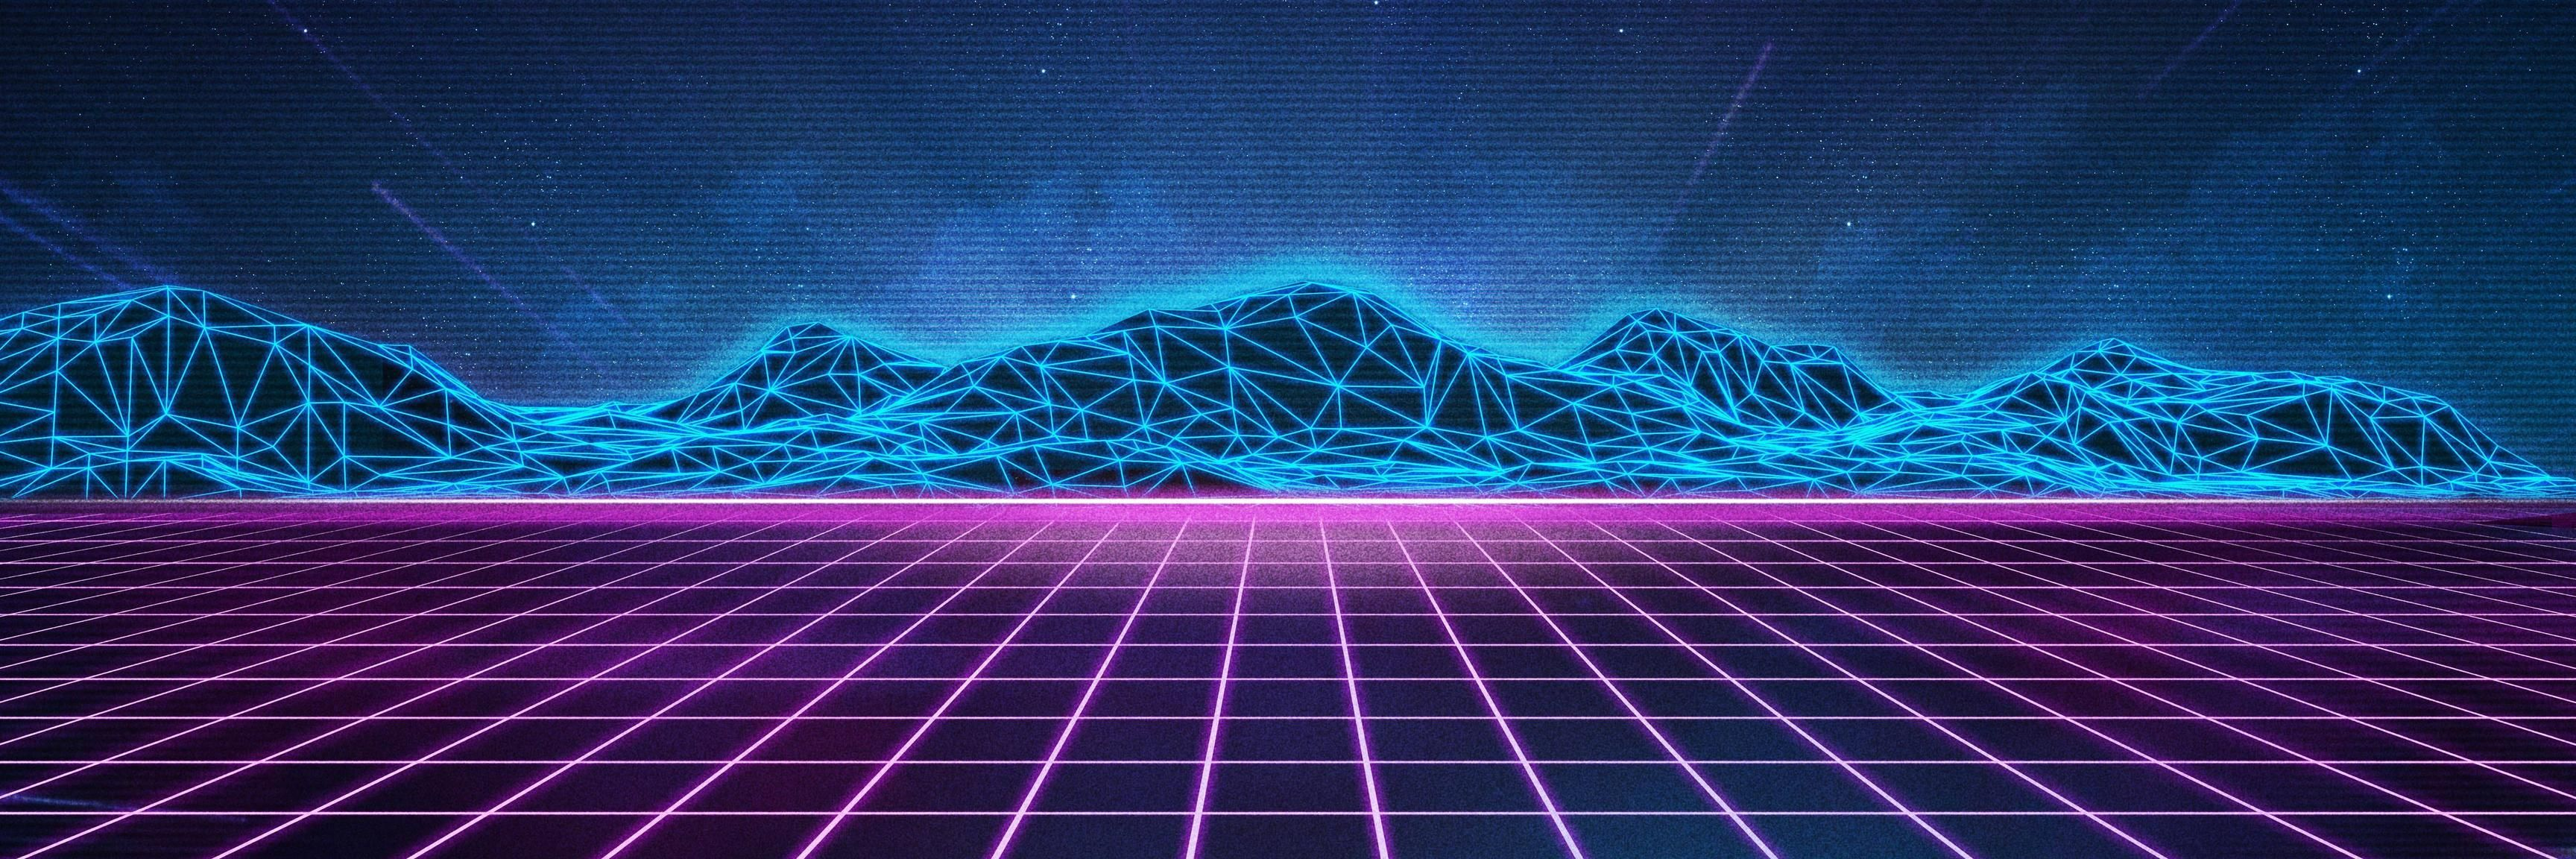 80s 4k Wallpaper Pack Album On Imgur Vaporwave Wallpaper Neon Wallpaper Iphone Wallpaper Hipster